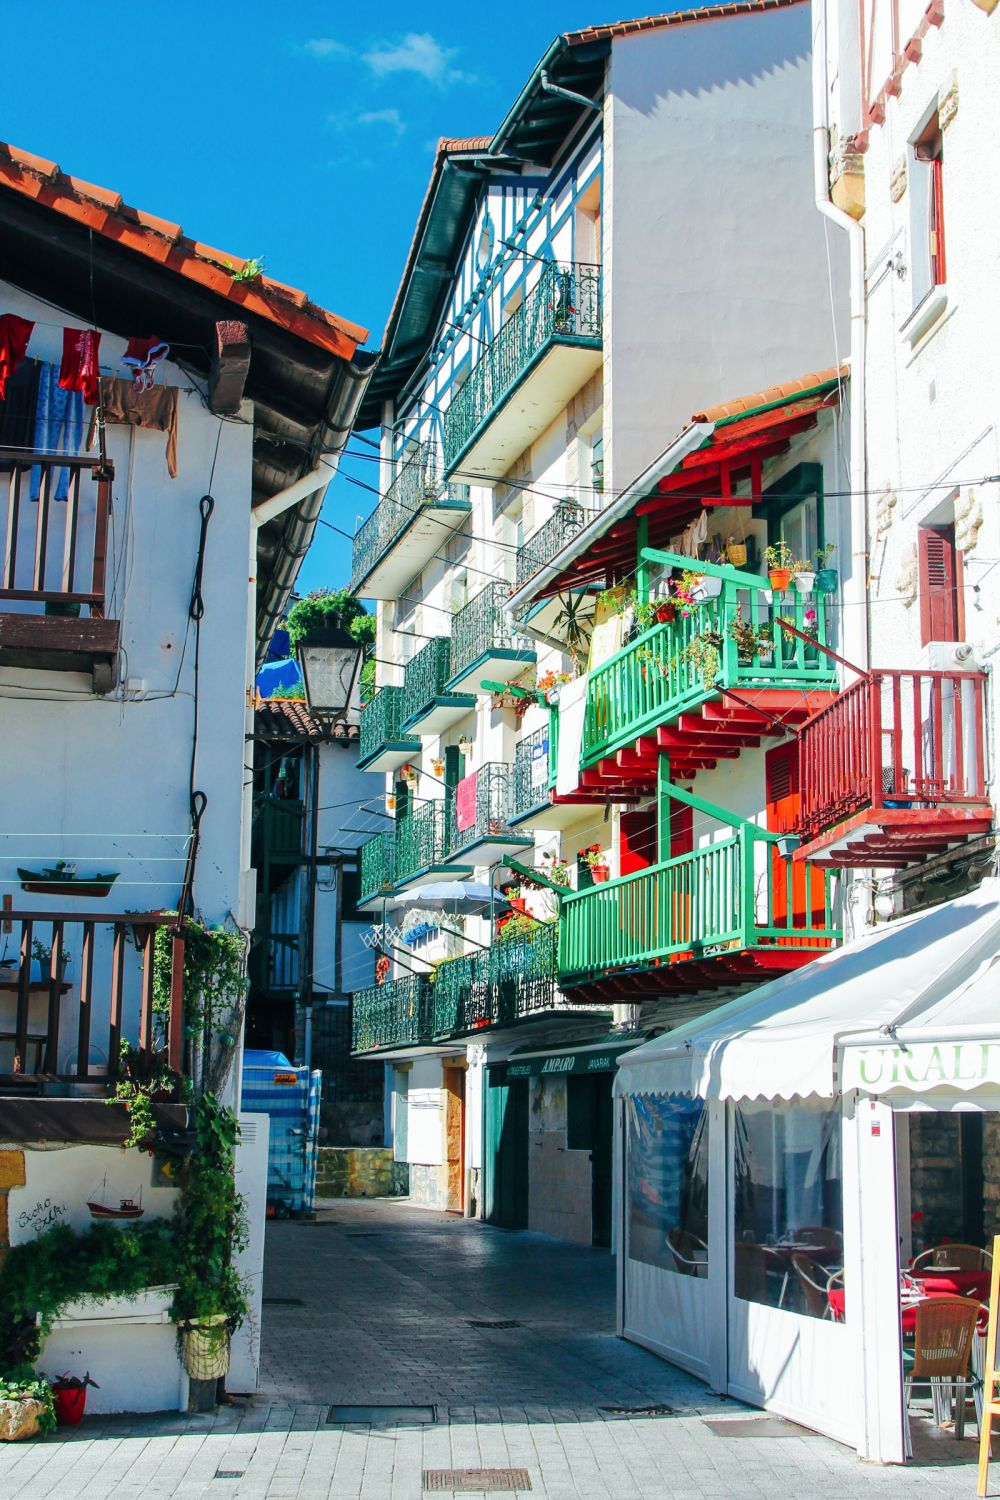 Photo Diary: Hondarribia - The Beautiful Seaside Town In The Basque Country (39)